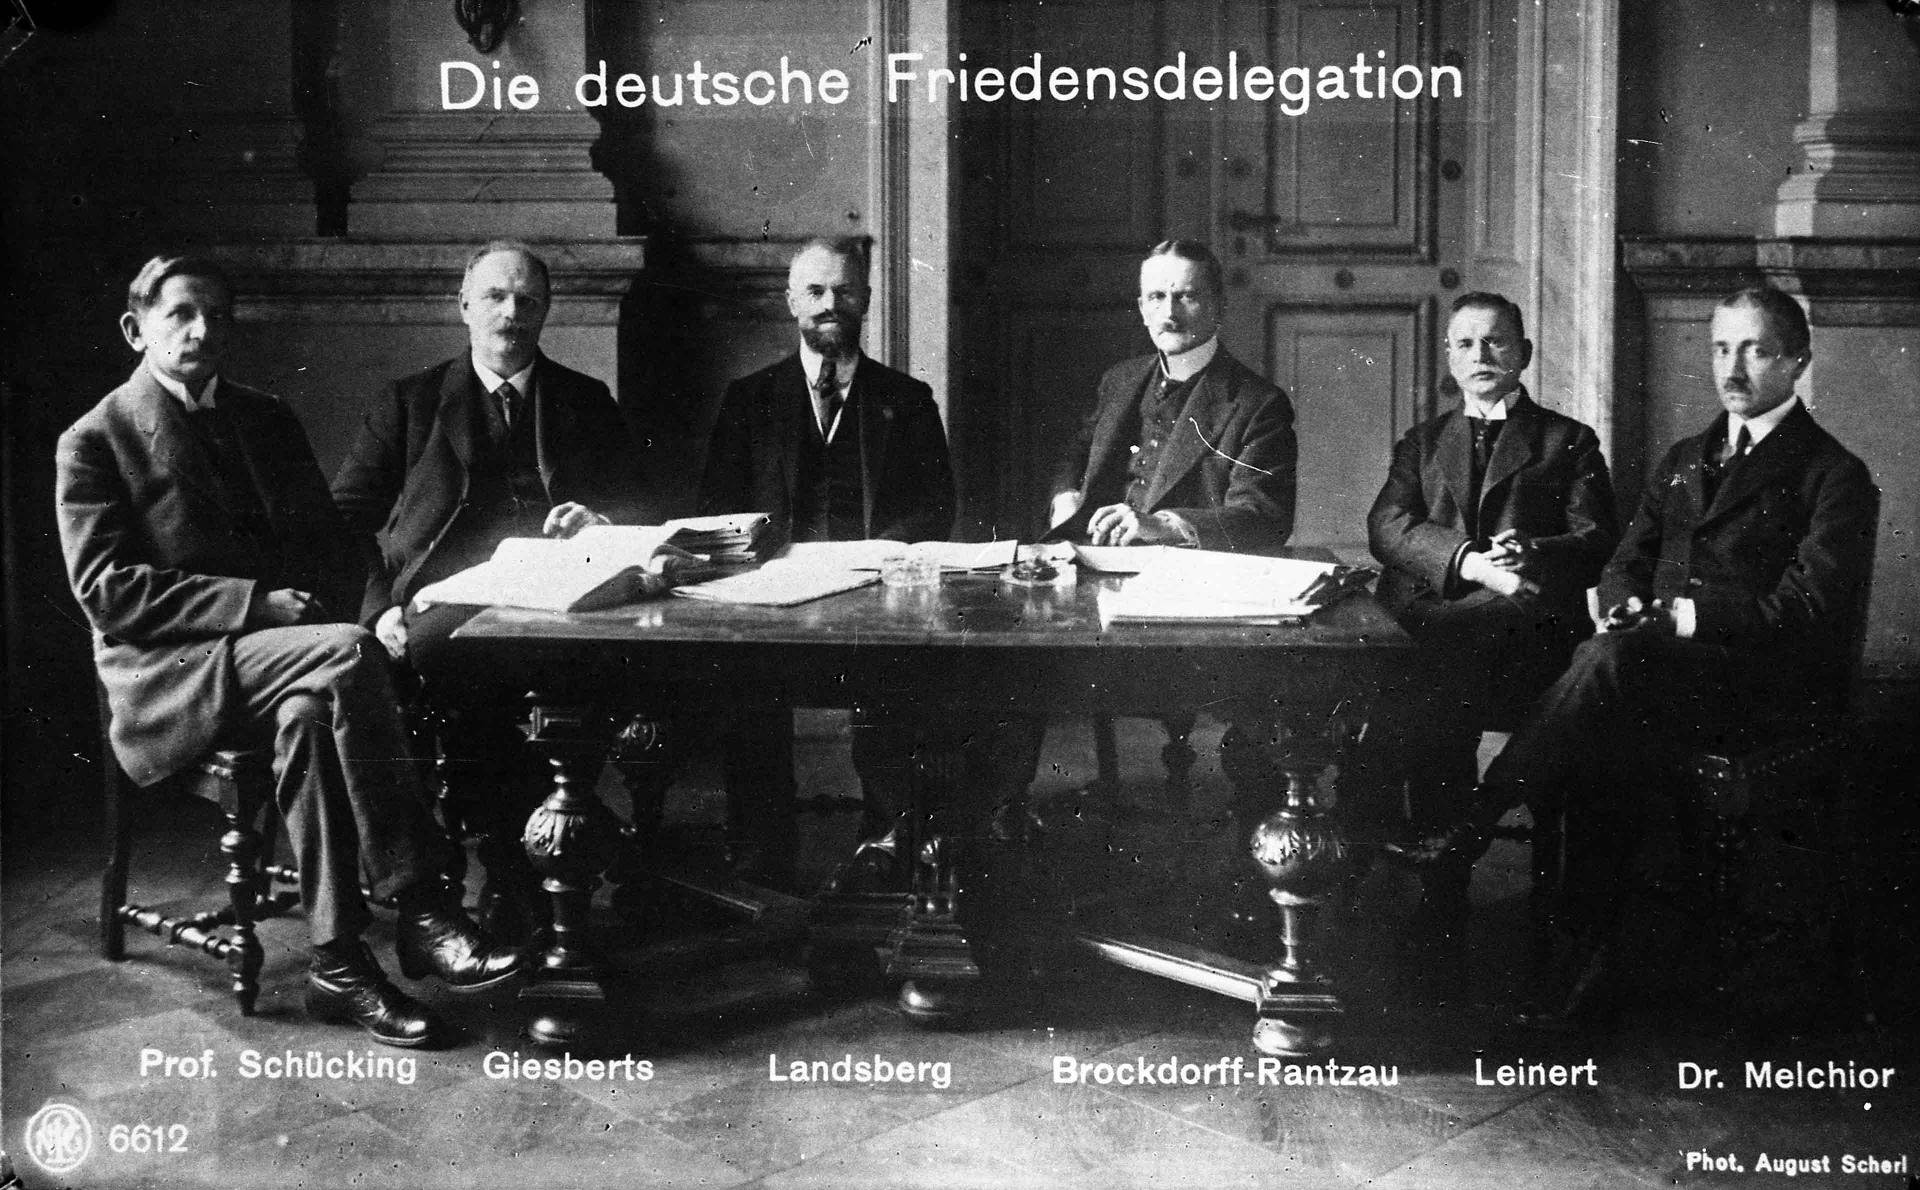 Group picture of the German peace delegation at Versailles around a table